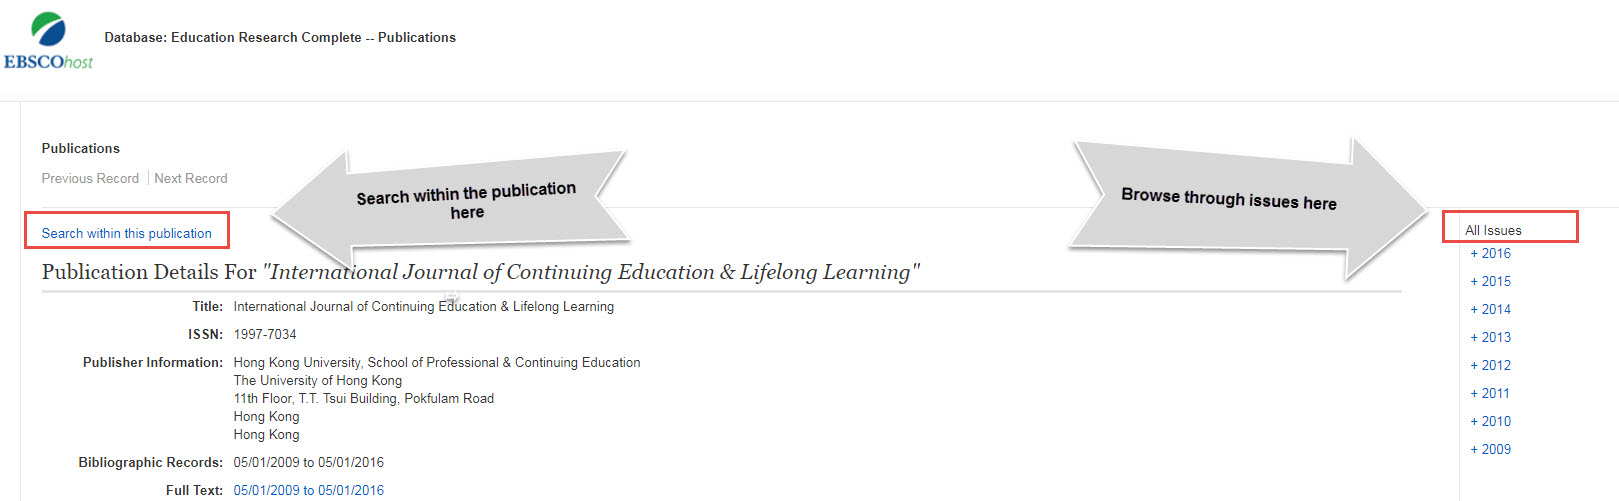 Screenshot of the publication details page for the International Journal of Continuing Education & Lifelong Learning.